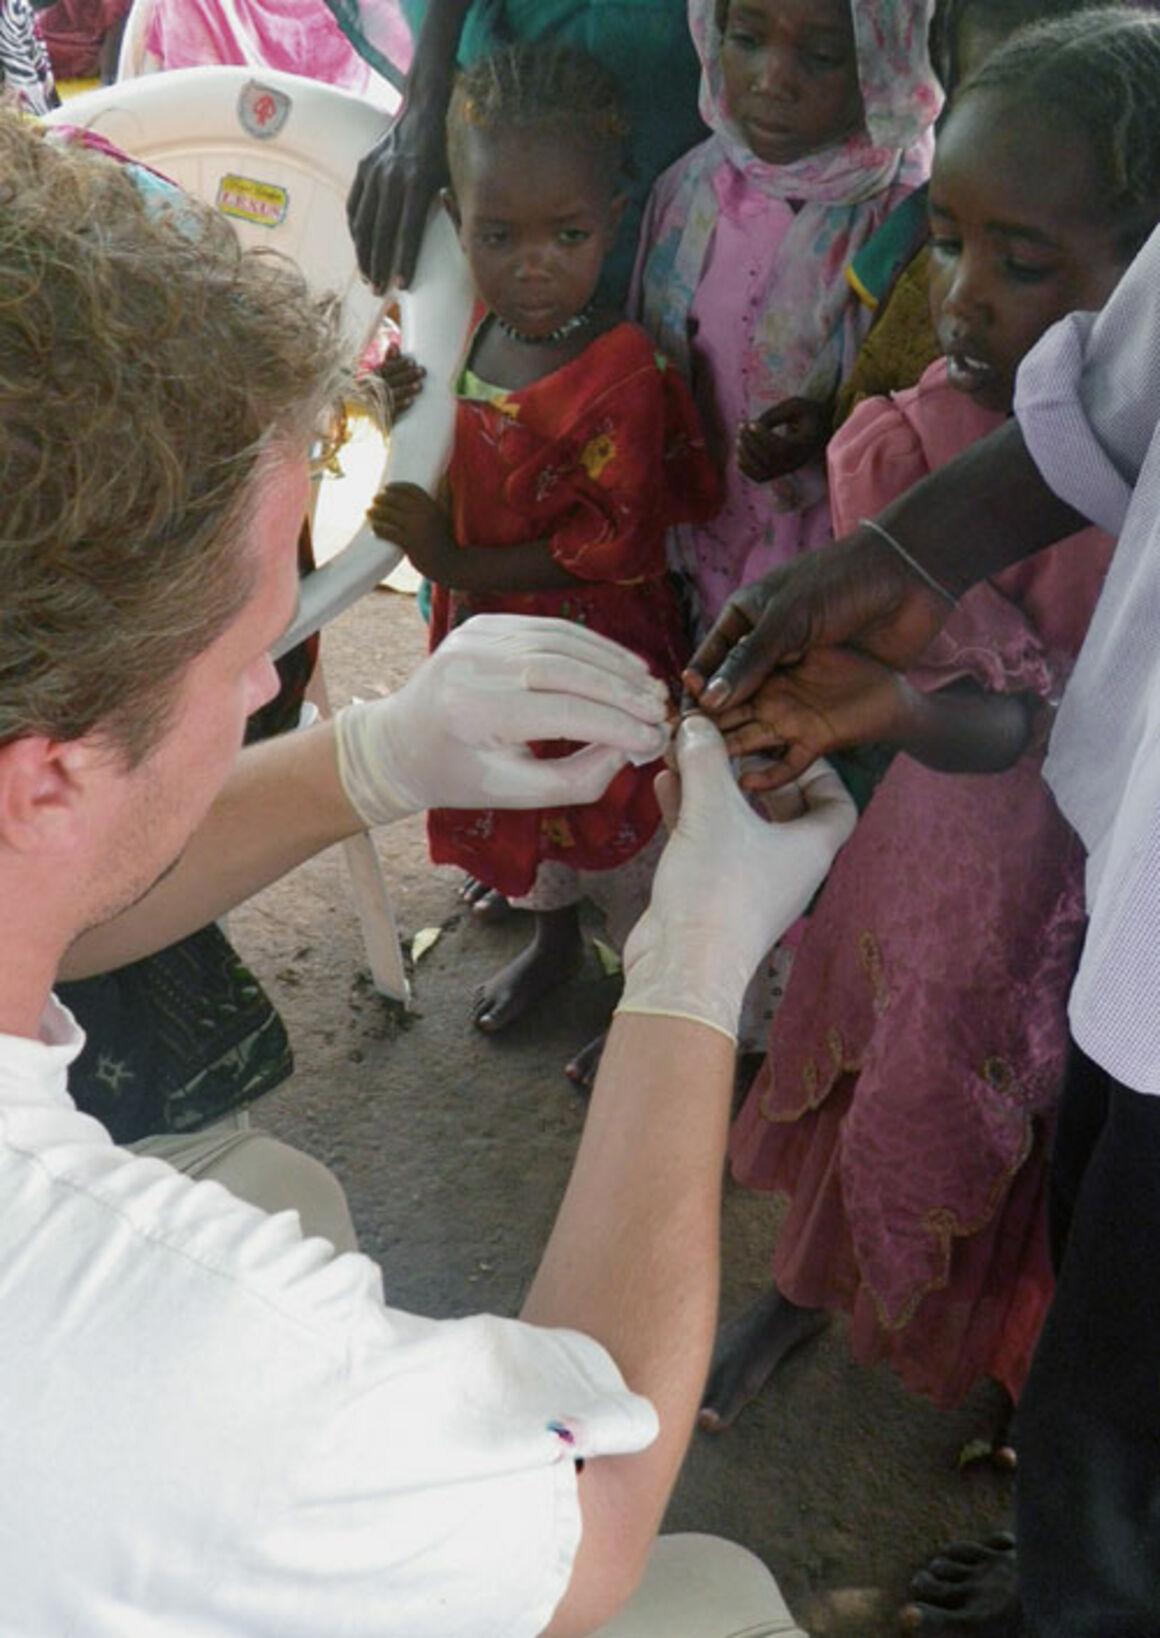 EPIET Postcard from the field -An epidemiologist taking a blood sample from a child for malaria testing, during Emergency response mission to fight malaria in Chad